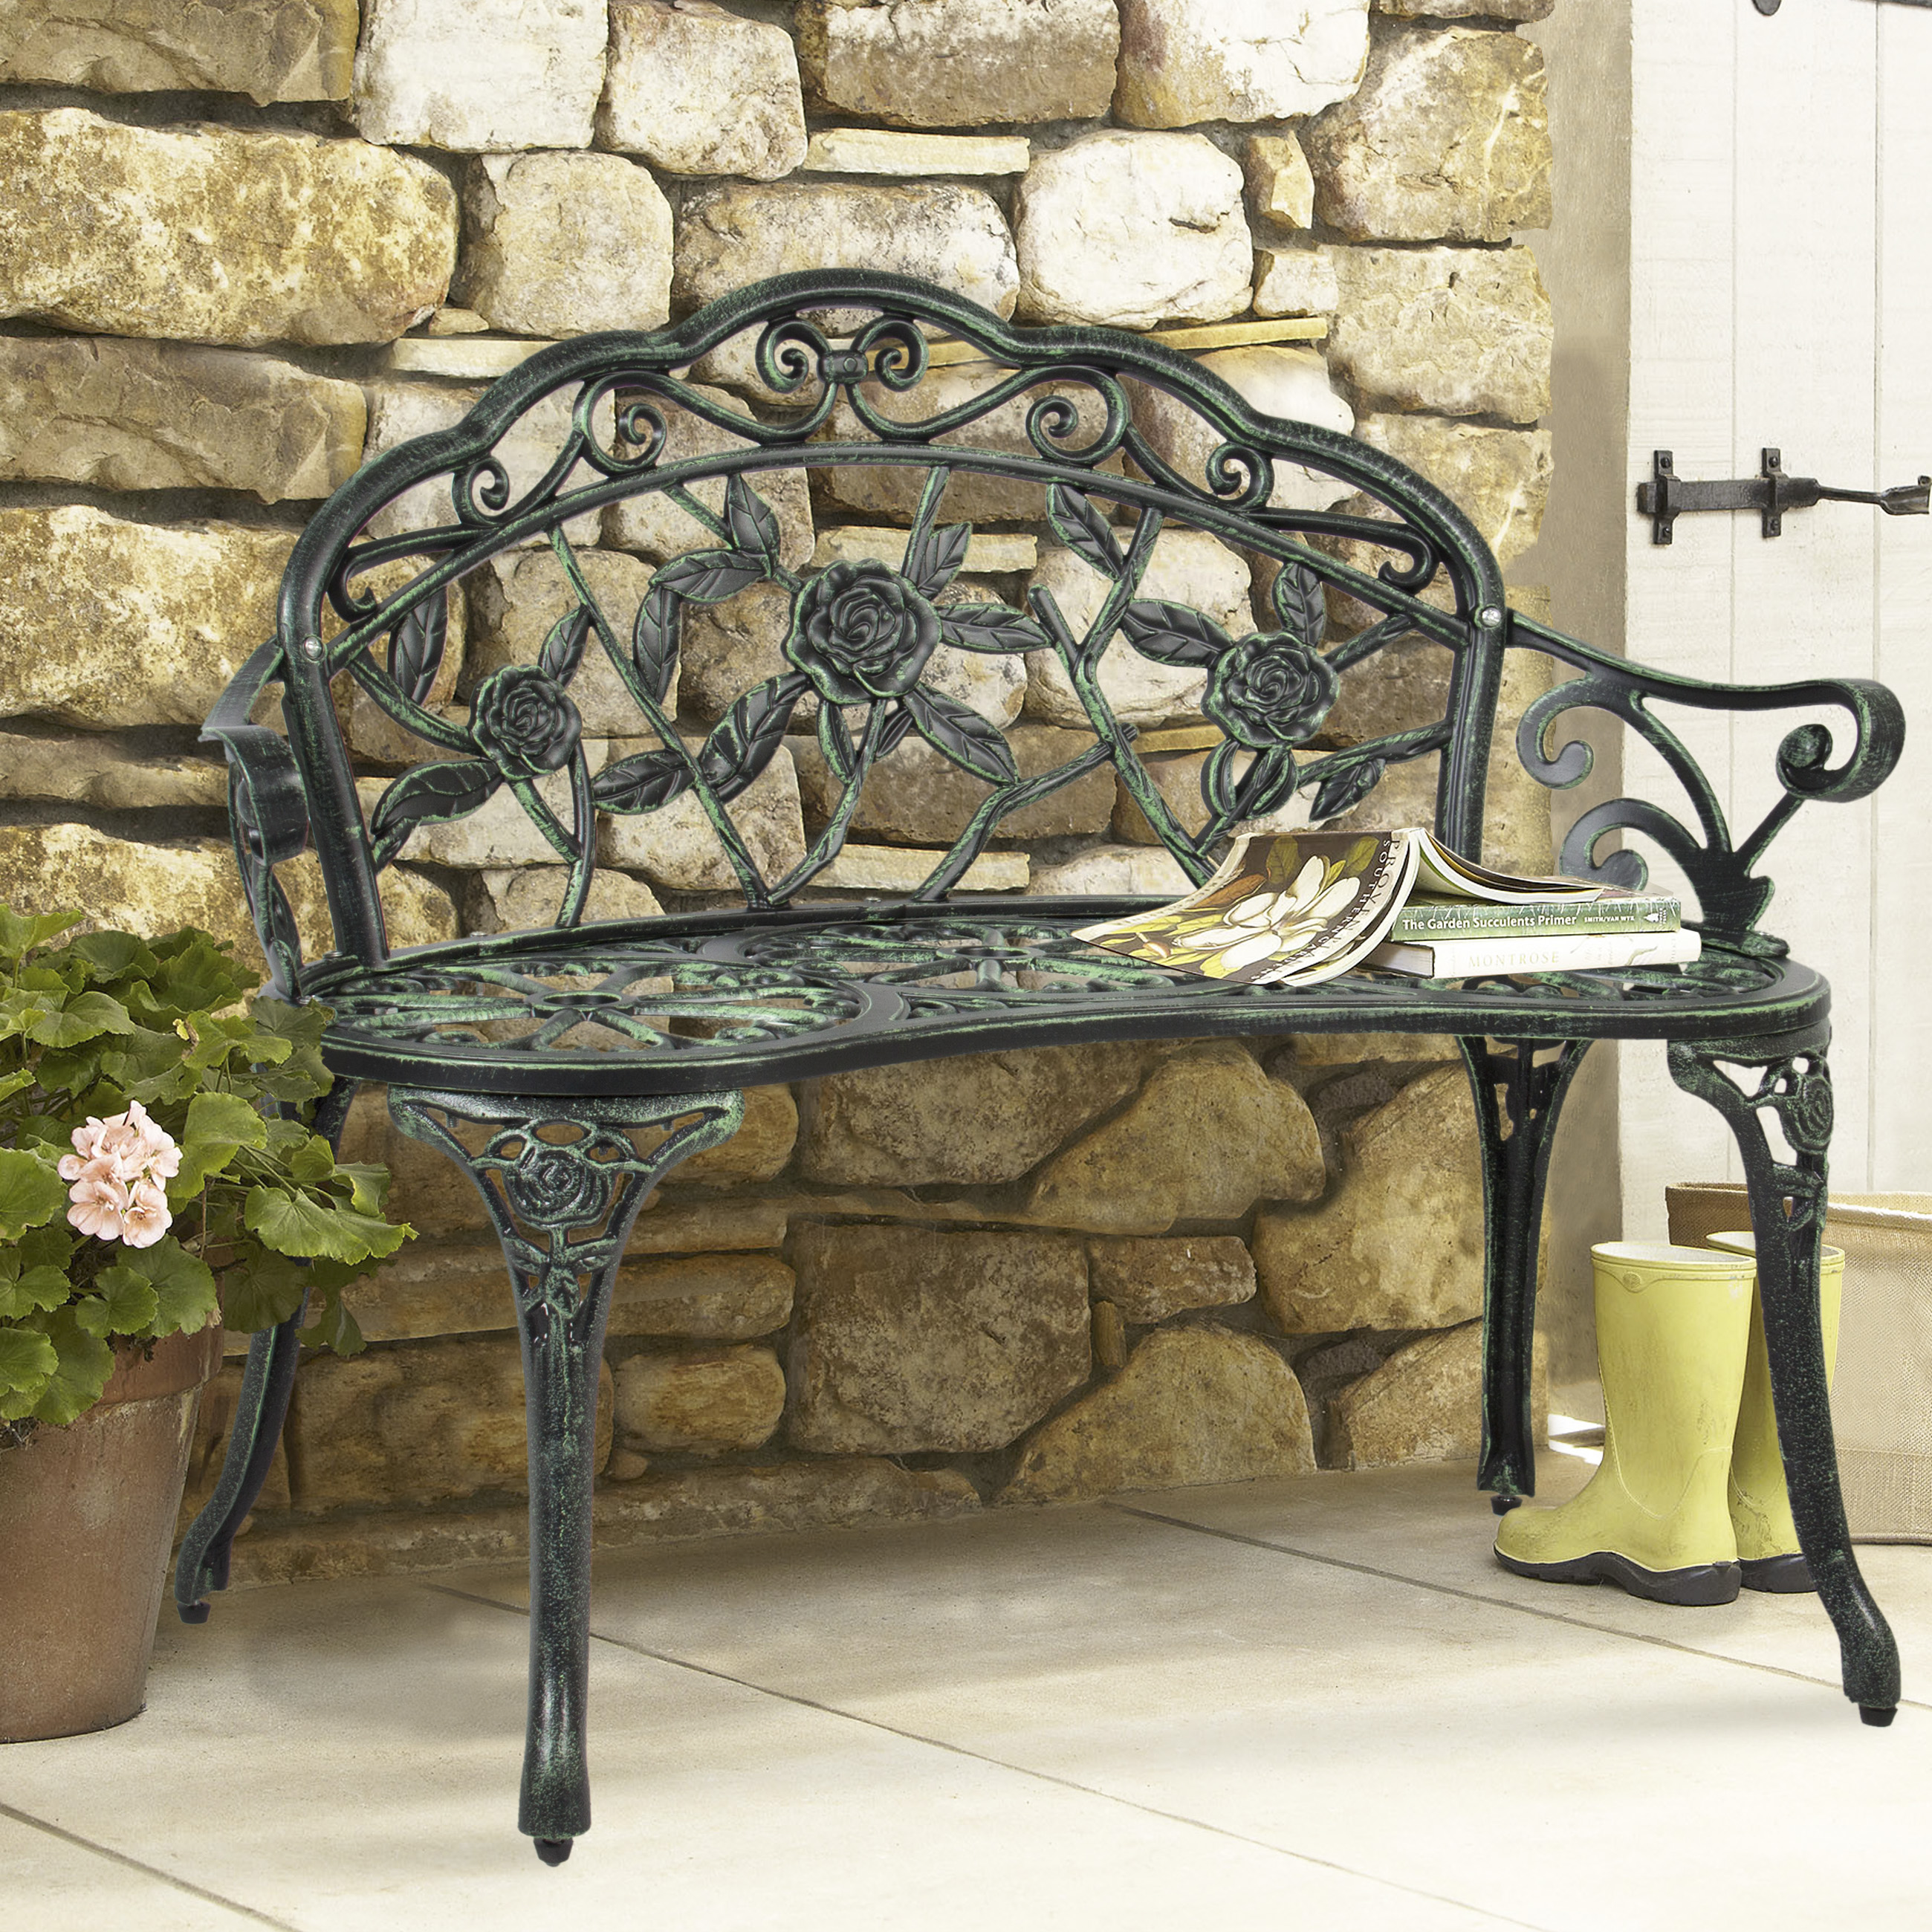 Best Choice Products Floral Rose Accented Metal Garden Patio Bench W/  Antique Finish   Black   Walmart.com